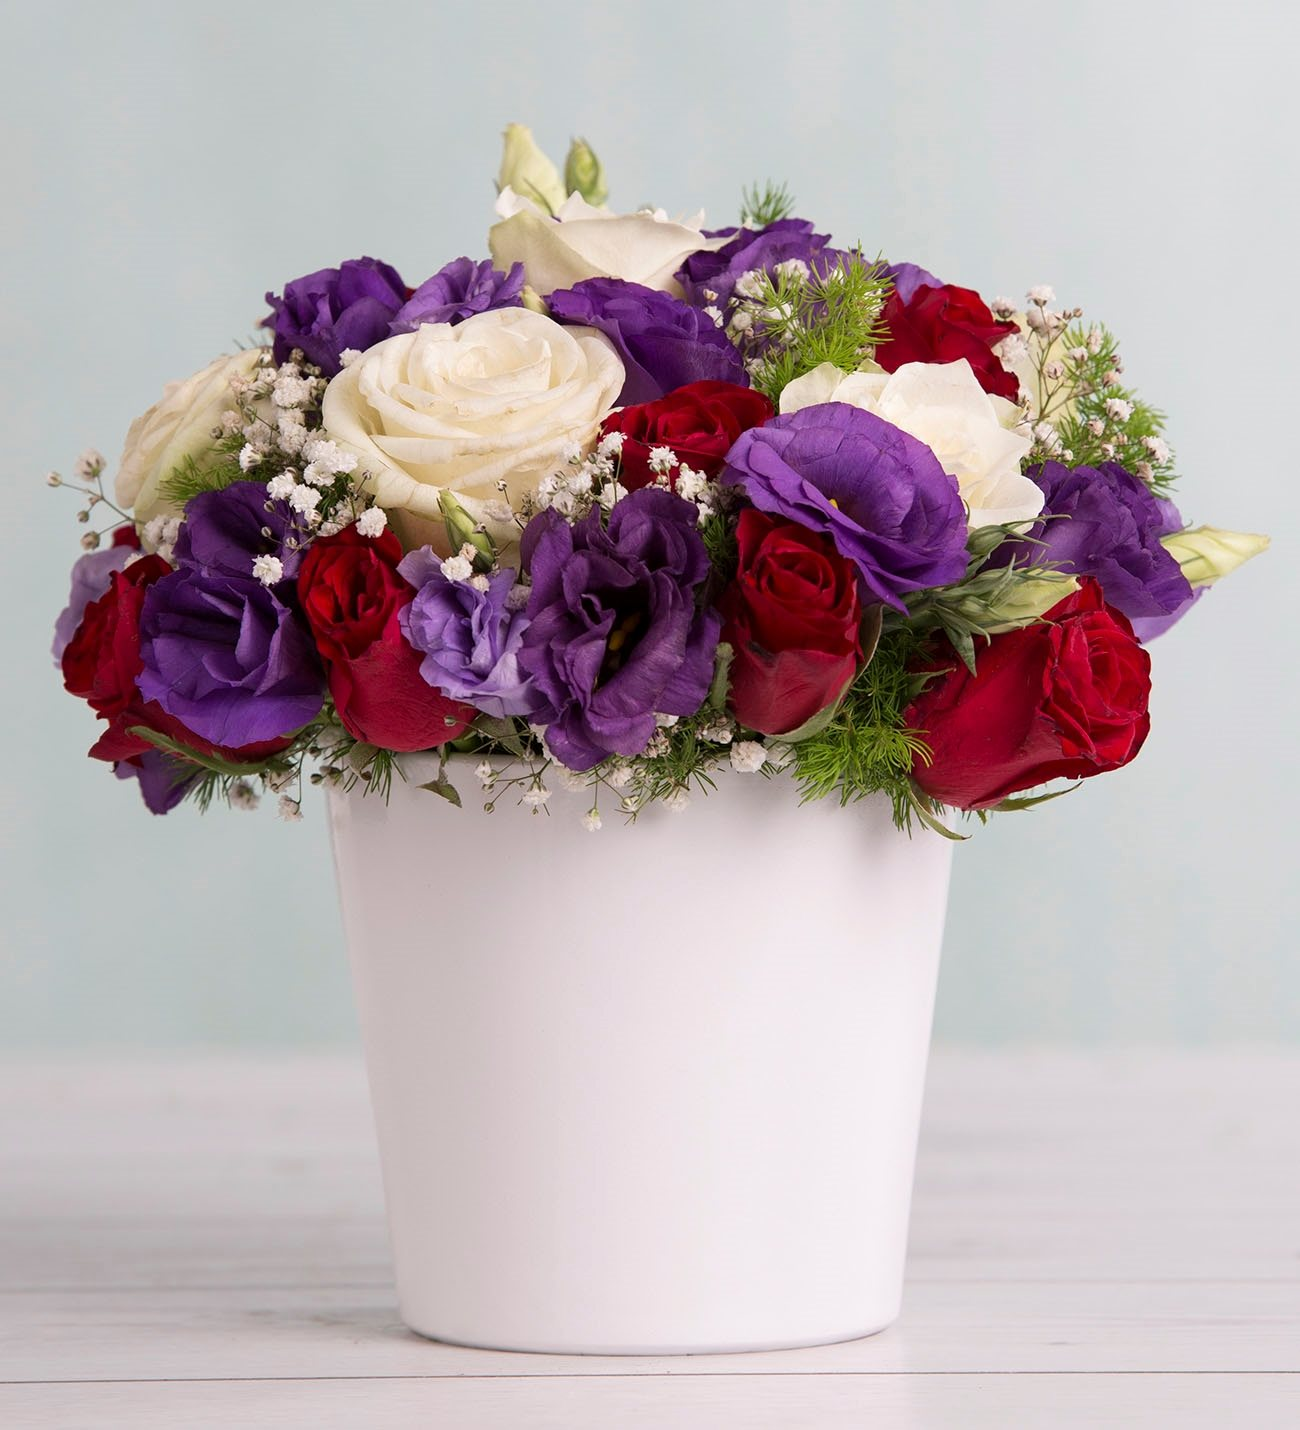 roses and lisianthus - simply cute